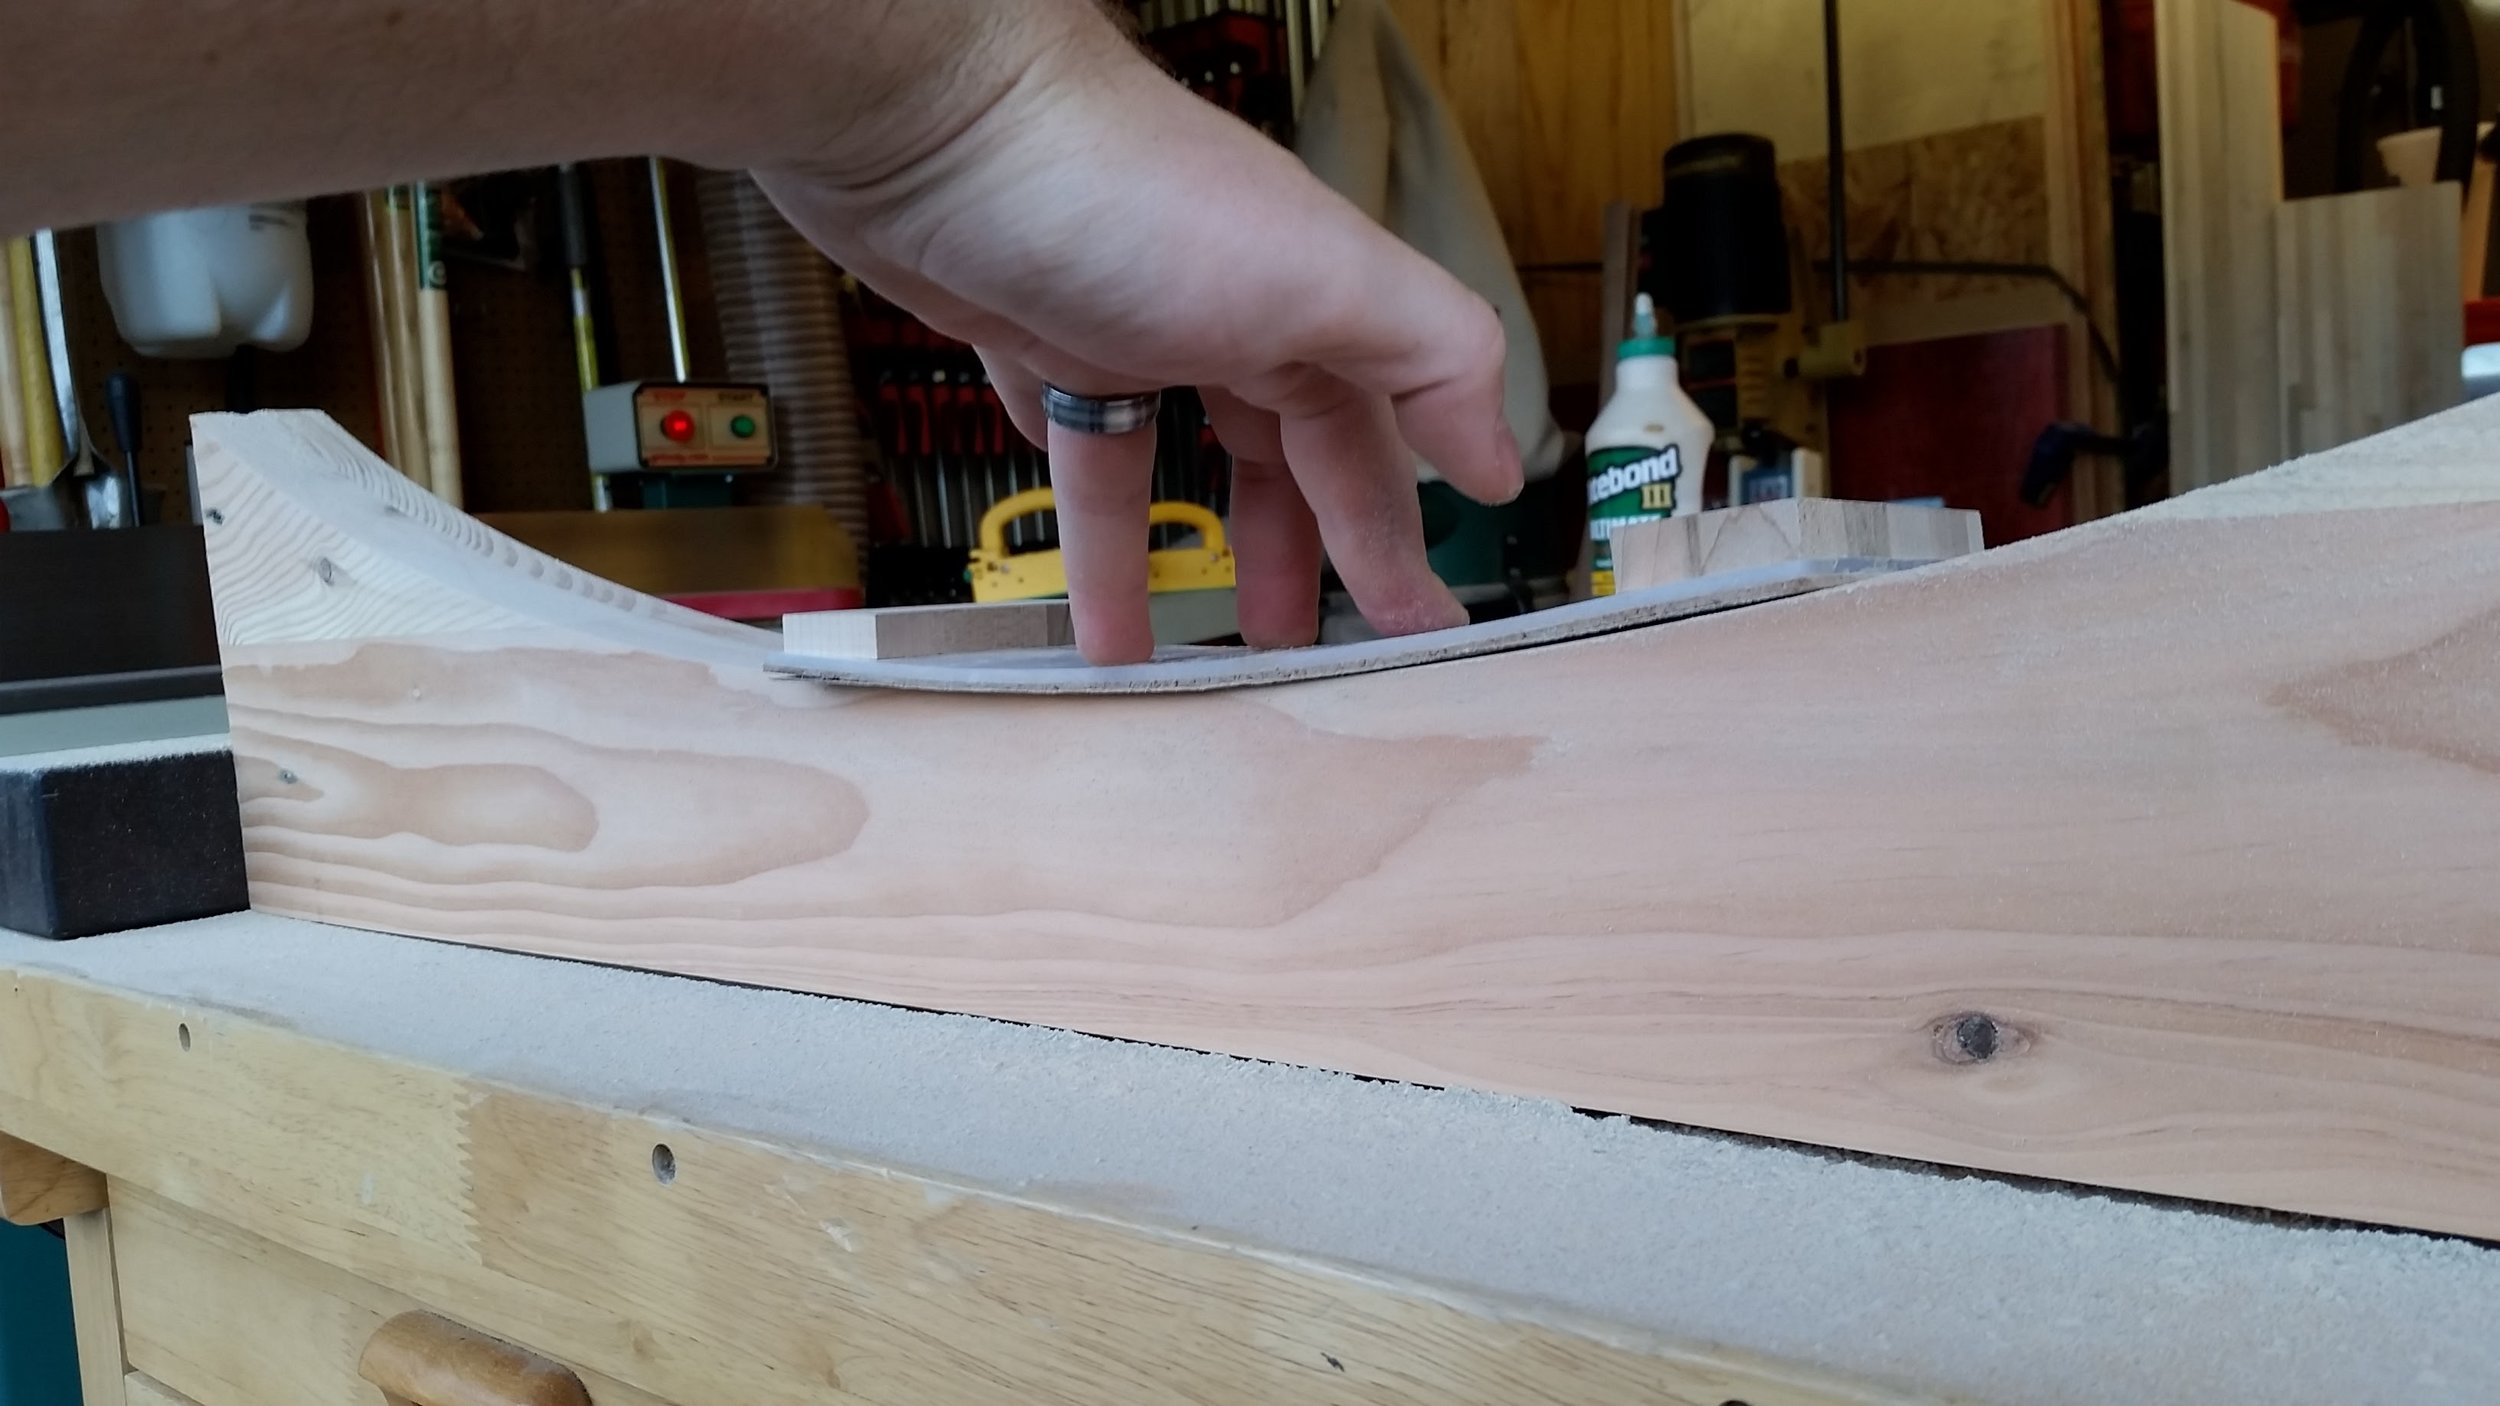 I made a flexible sheet sander to sand the form into smooth and even curves.